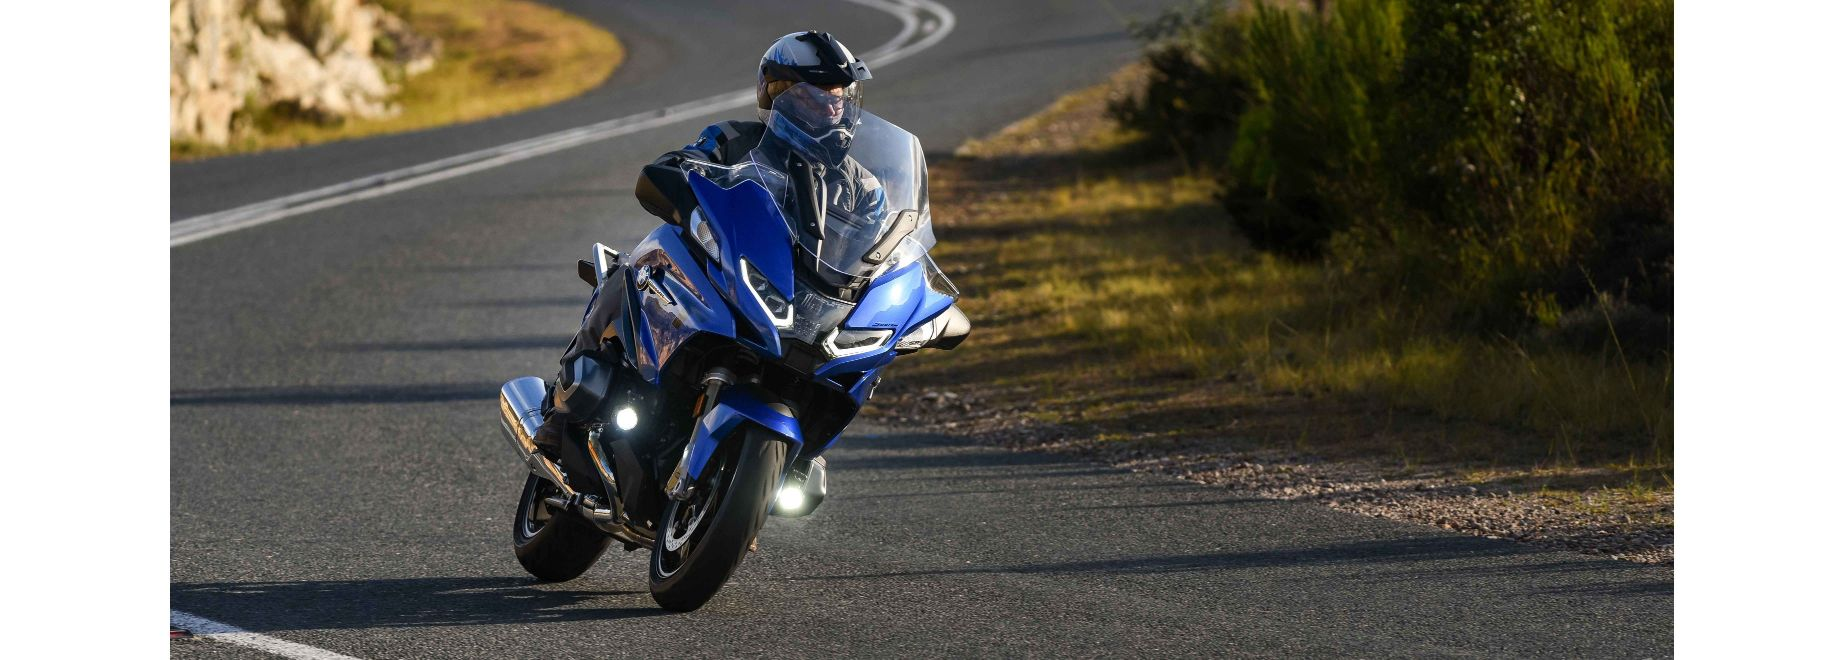 BMW's sporty touring motorcycle updated